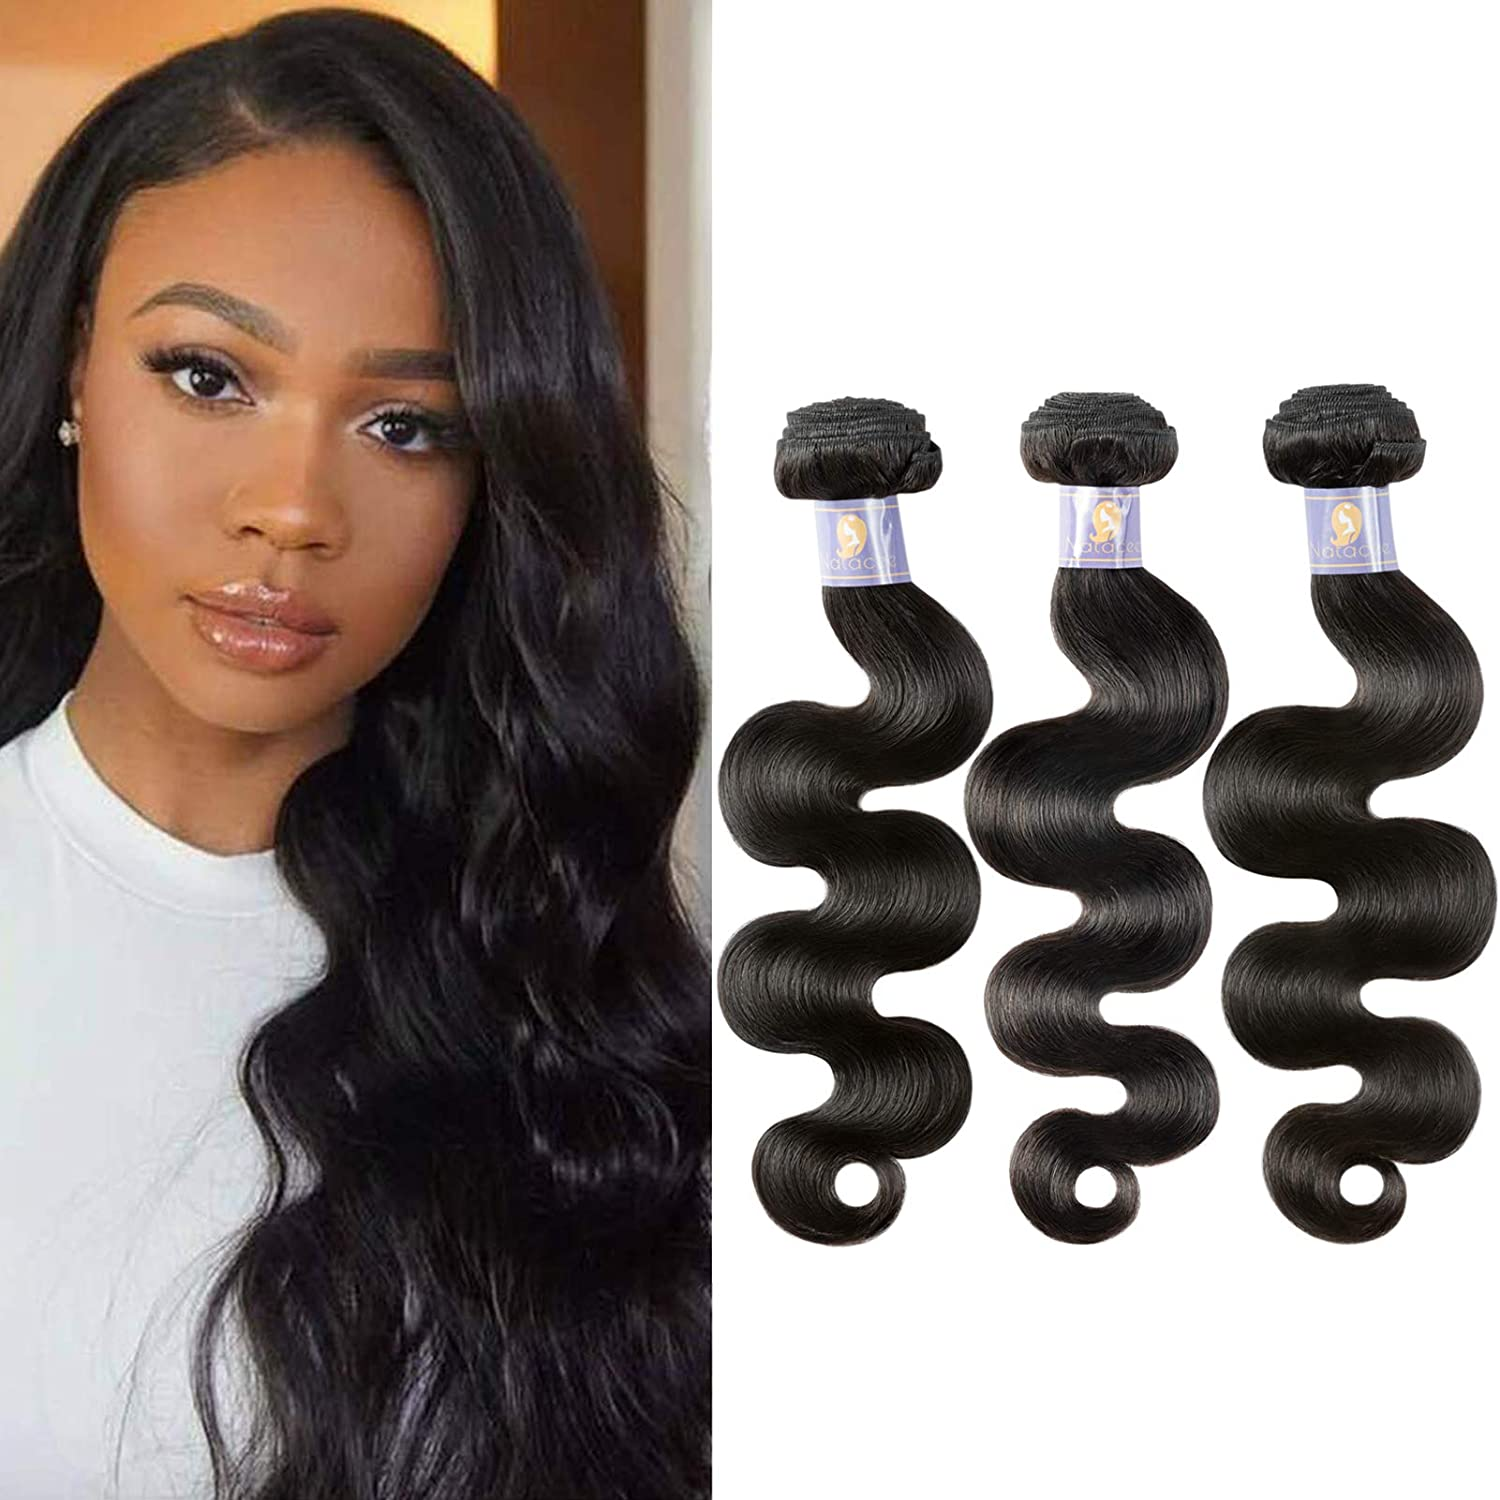 Natacee Sew In Virgin Hair Extensions Unprocessed Wave Fort Worth Mall Max 72% OFF Body Raw